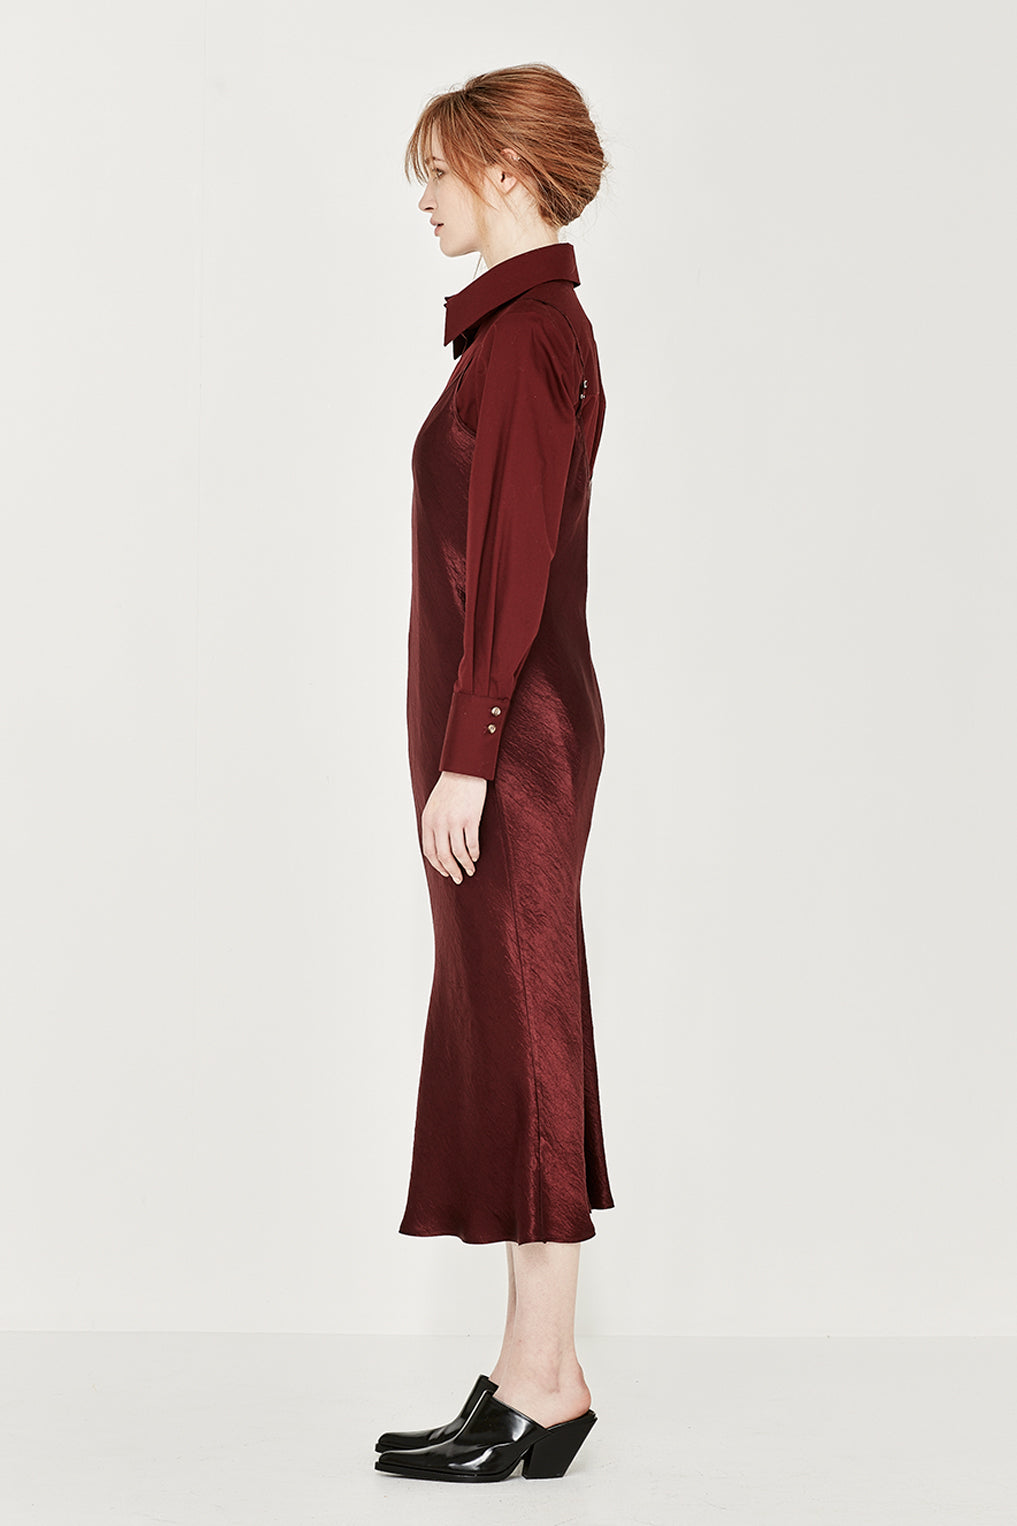 The Corsica Slip Dress in Bordeaux